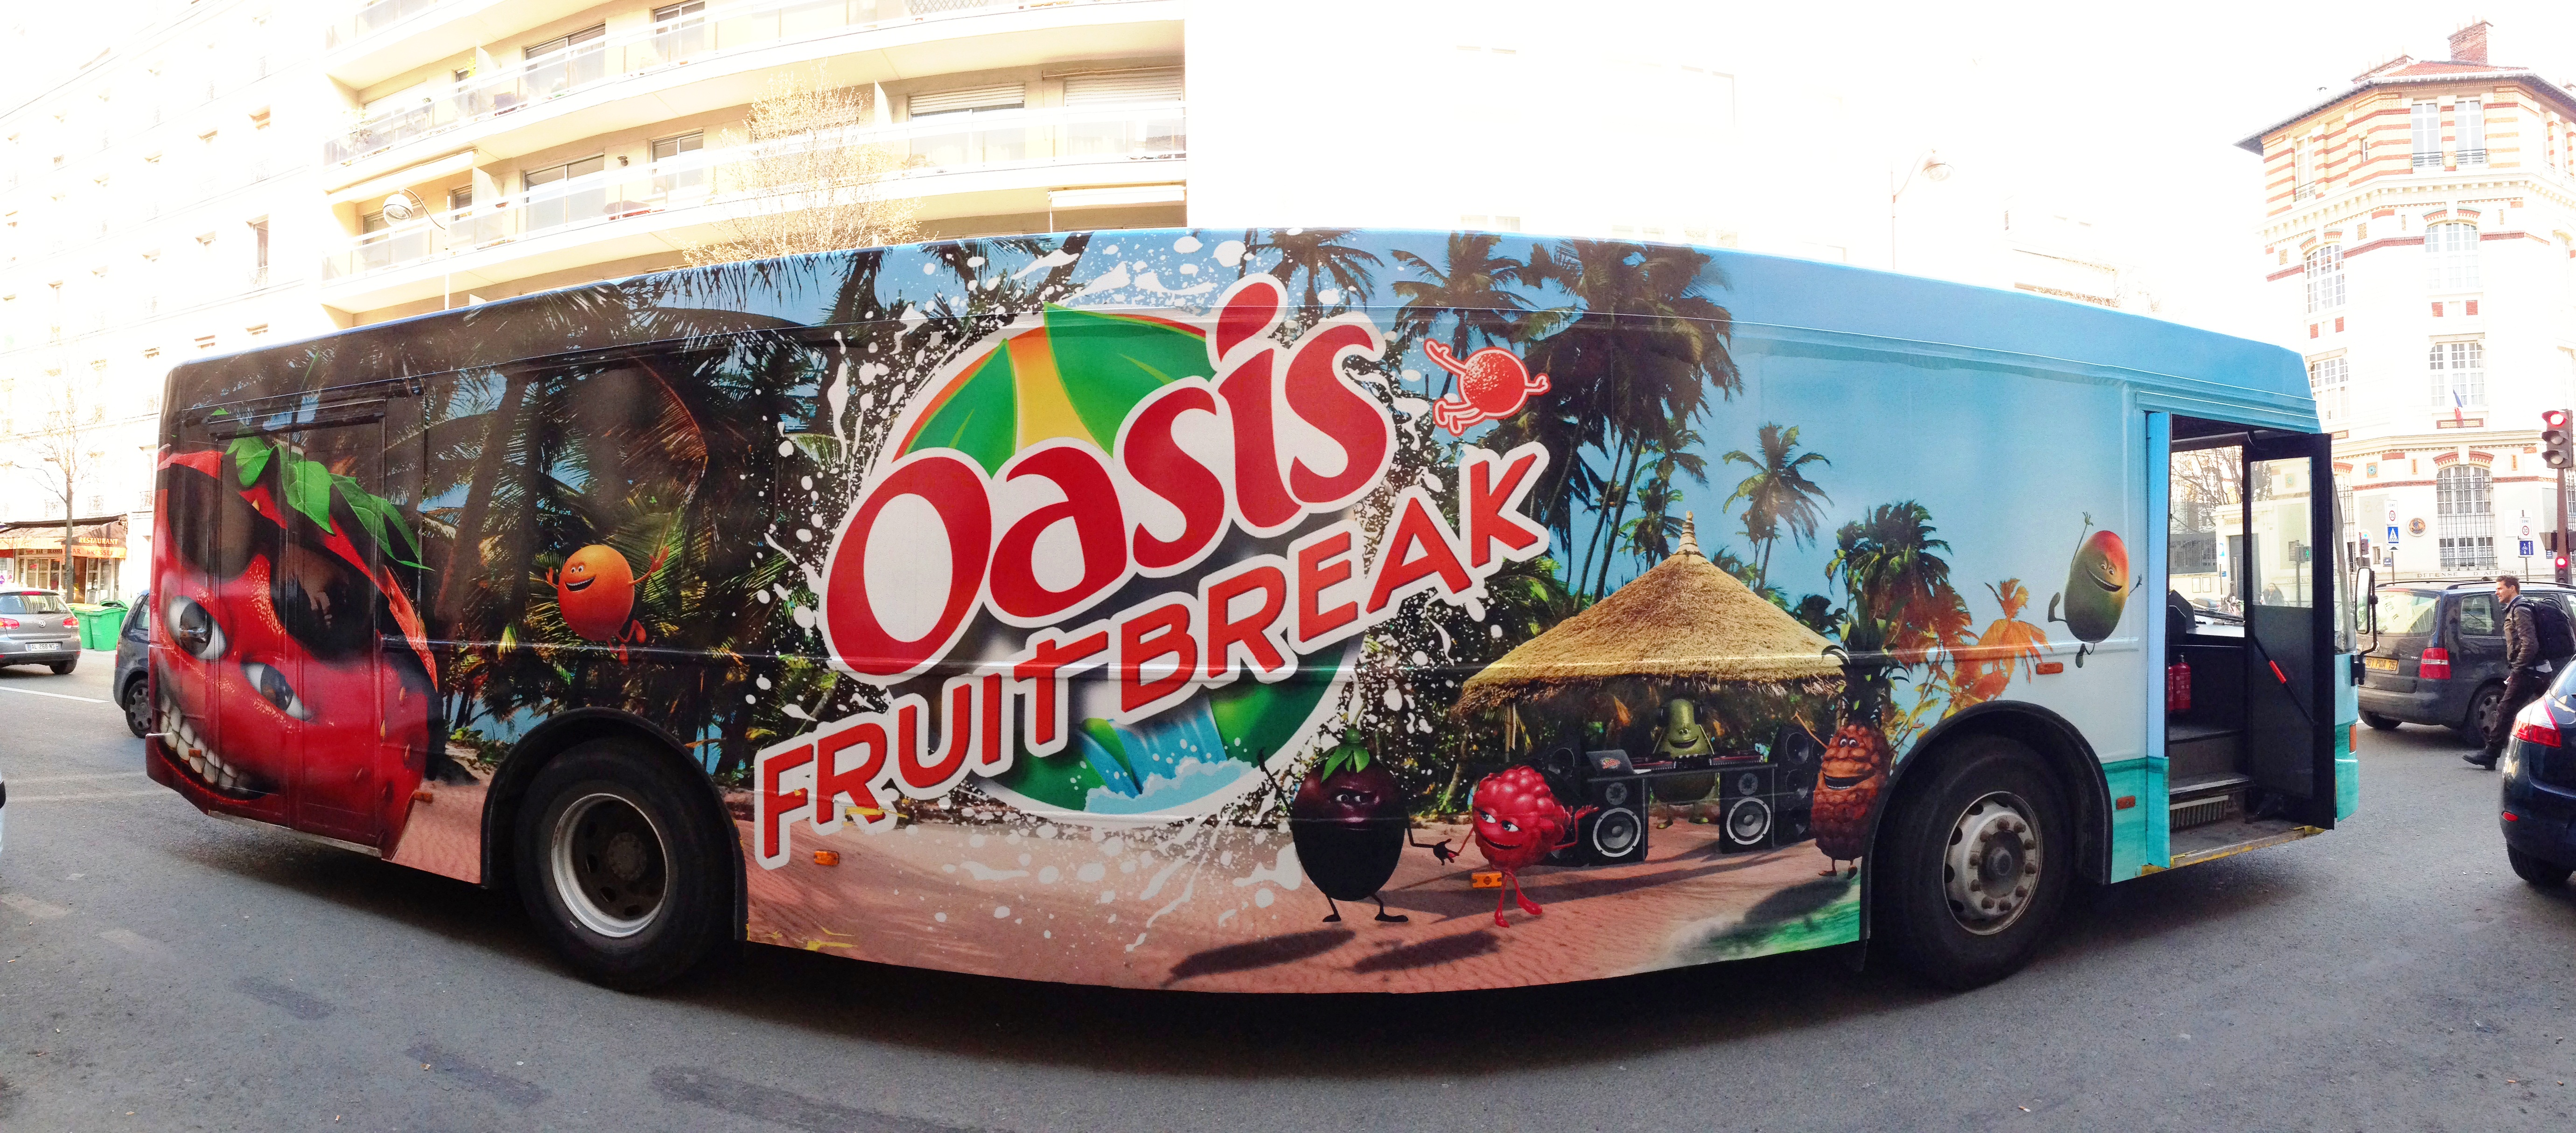 OASIS FRUIT BREAK : Un cocktail à ne pas manguer !